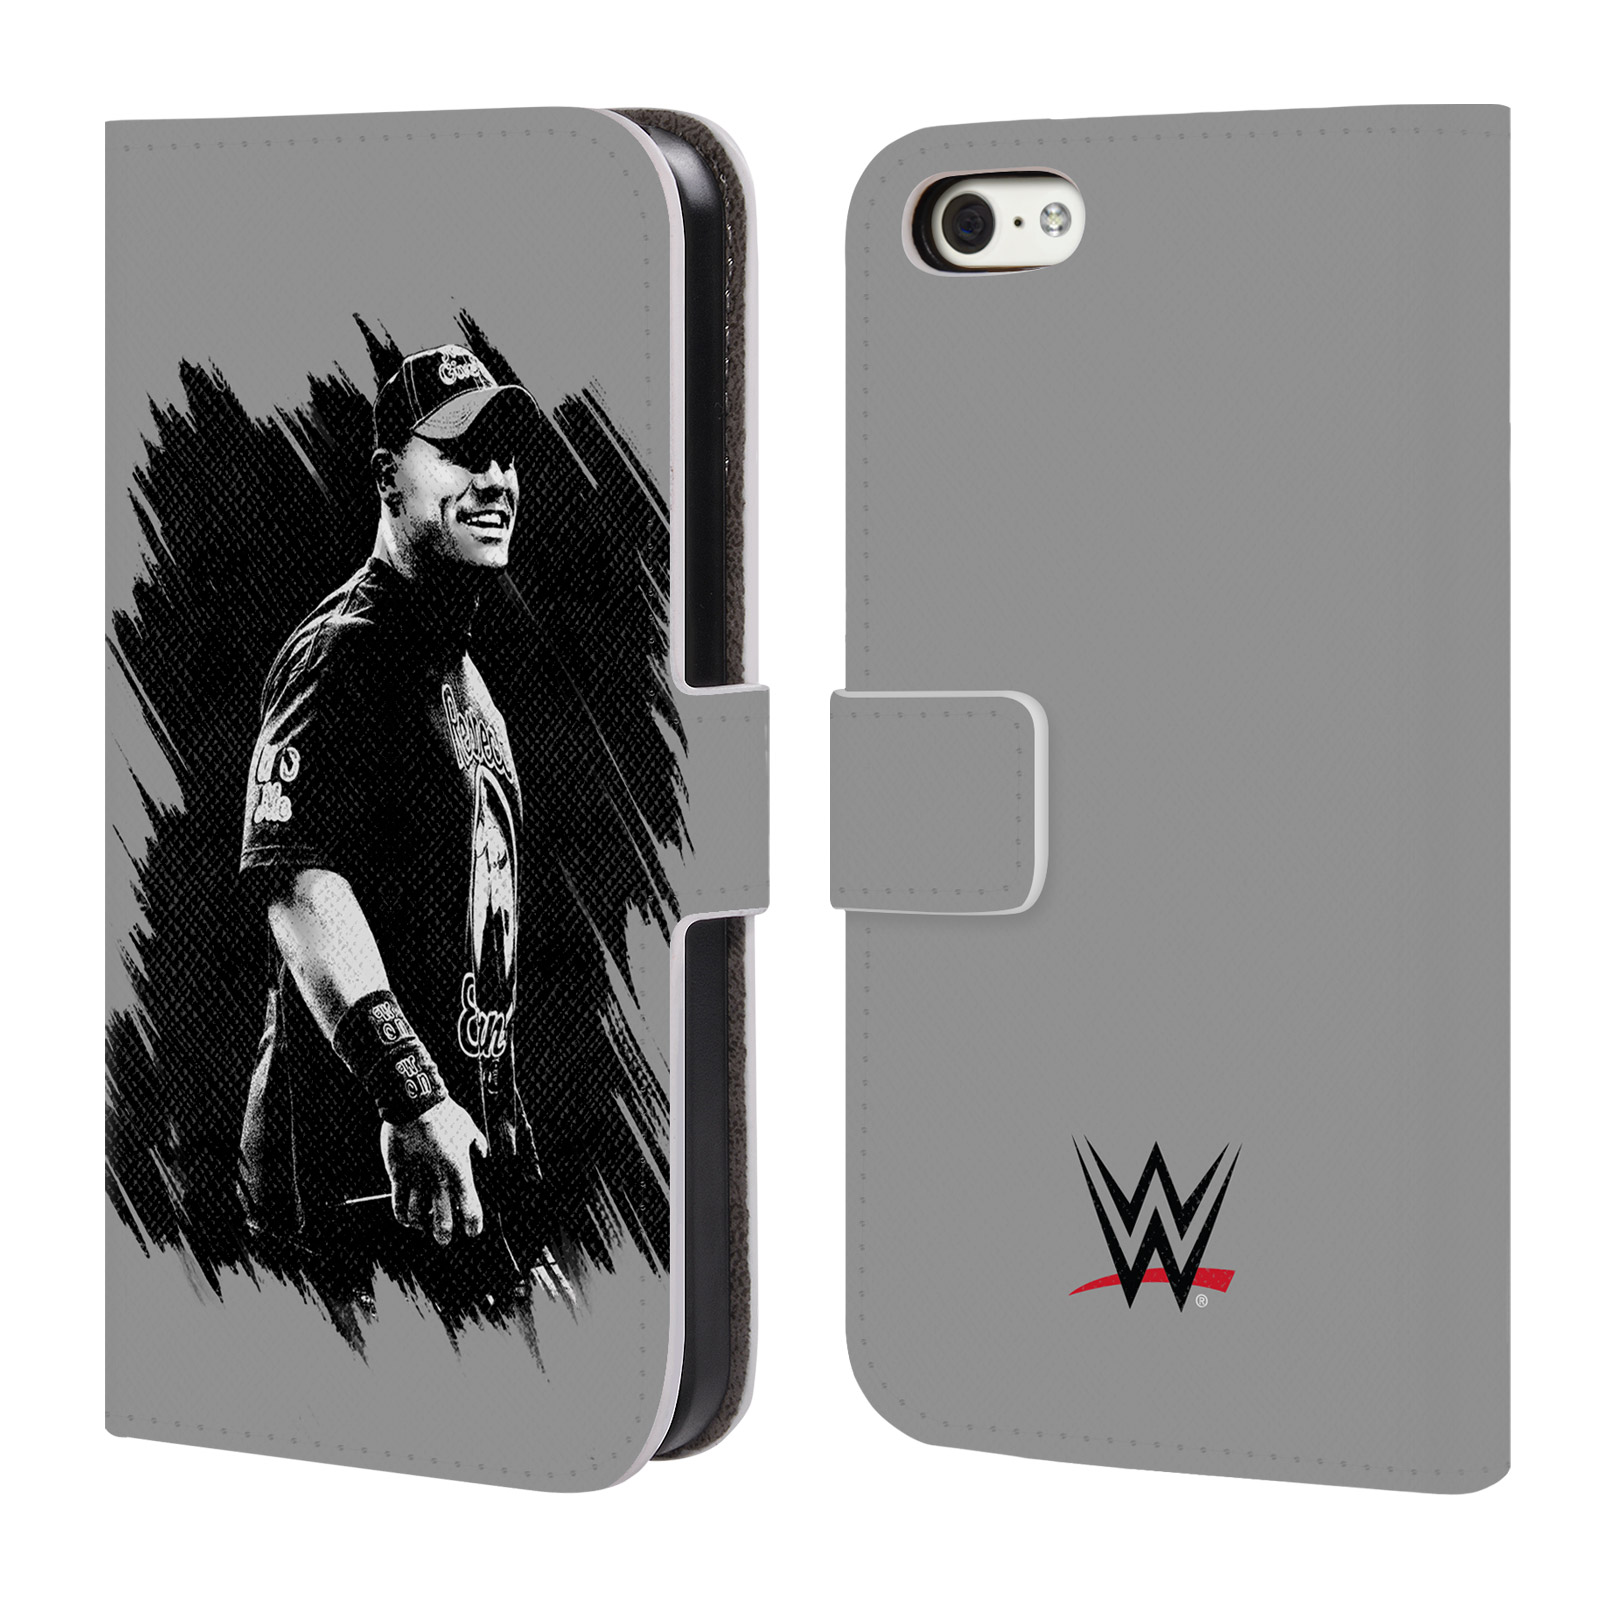 OFFICIAL WWE 2017/18 SUPERSTARS 4 LEATHER BOOK WALLET CASE COVER FOR APPLE IPHONE PHONES